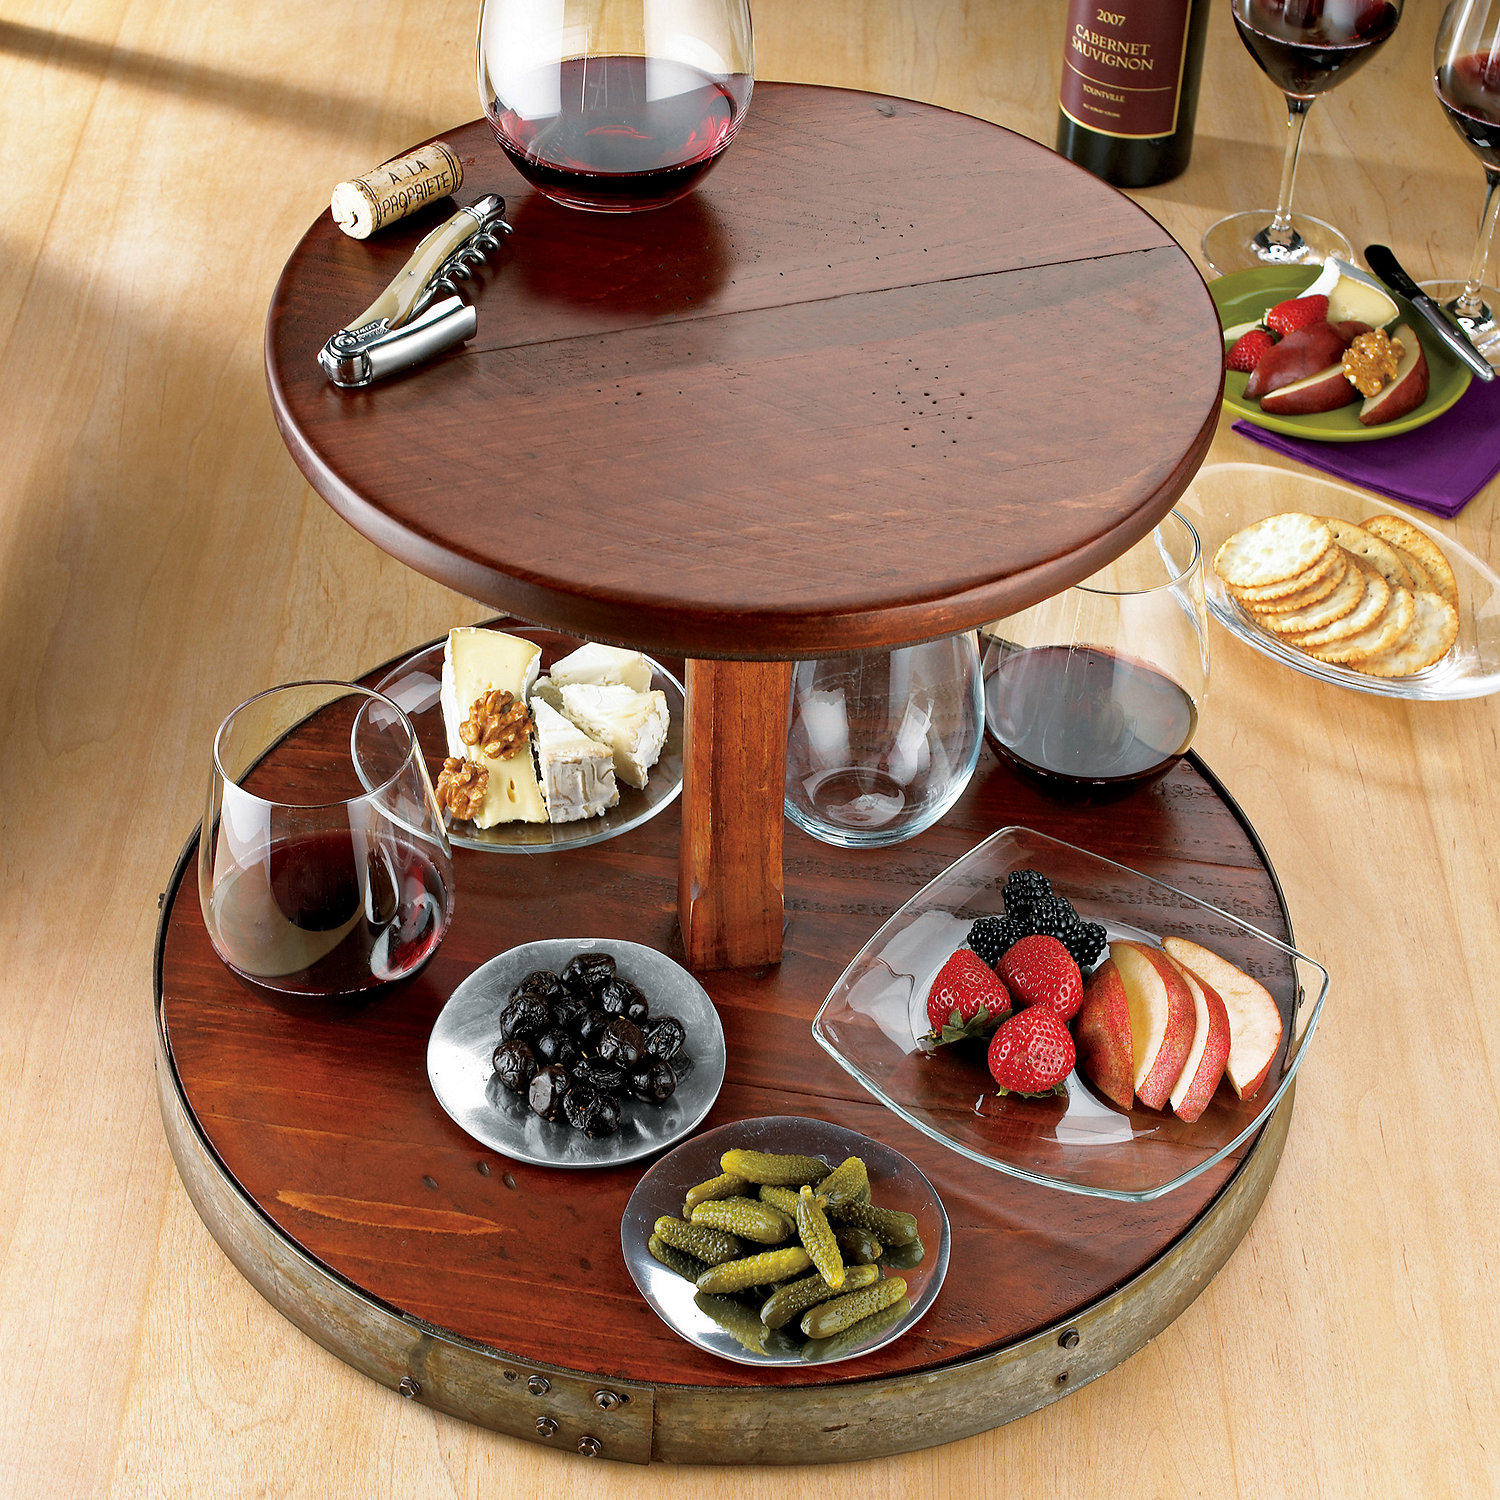 Inspiring wine barrel lazy susan for furniture accessories ideas with personalized wine barrel lazy susan